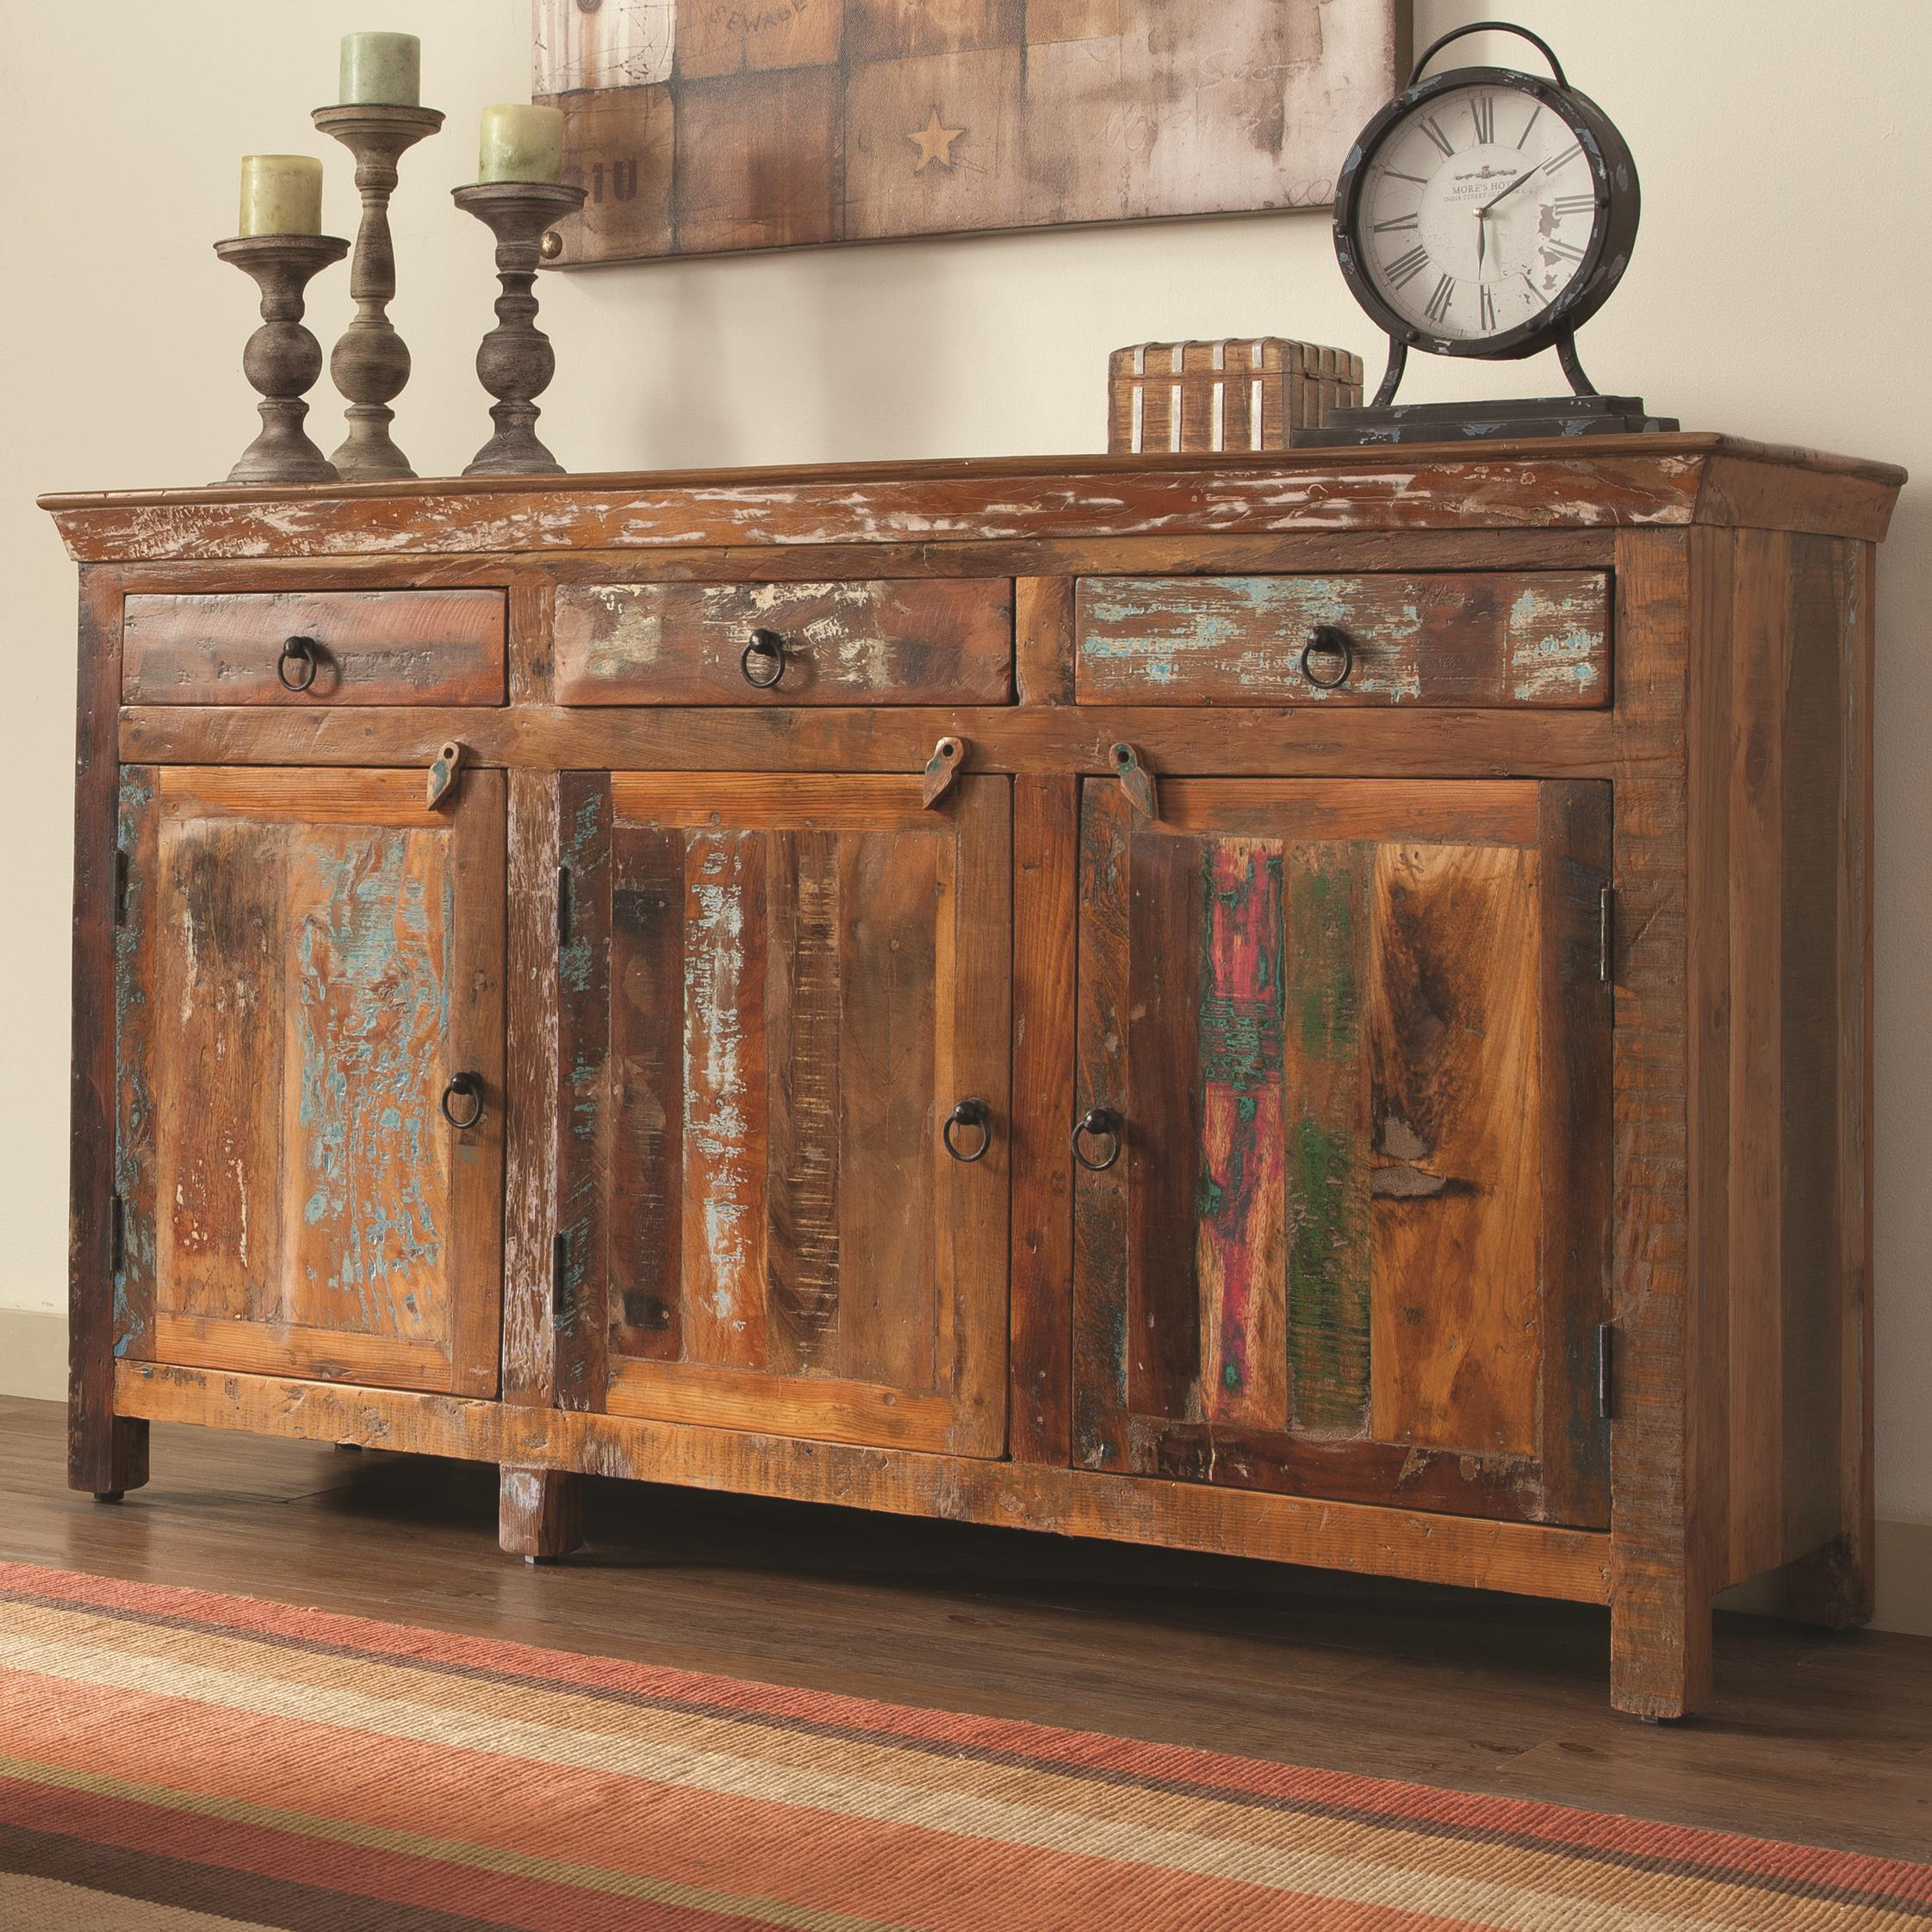 Coaster Accent Cabinets 950367 Rustic Cabinet W Doors